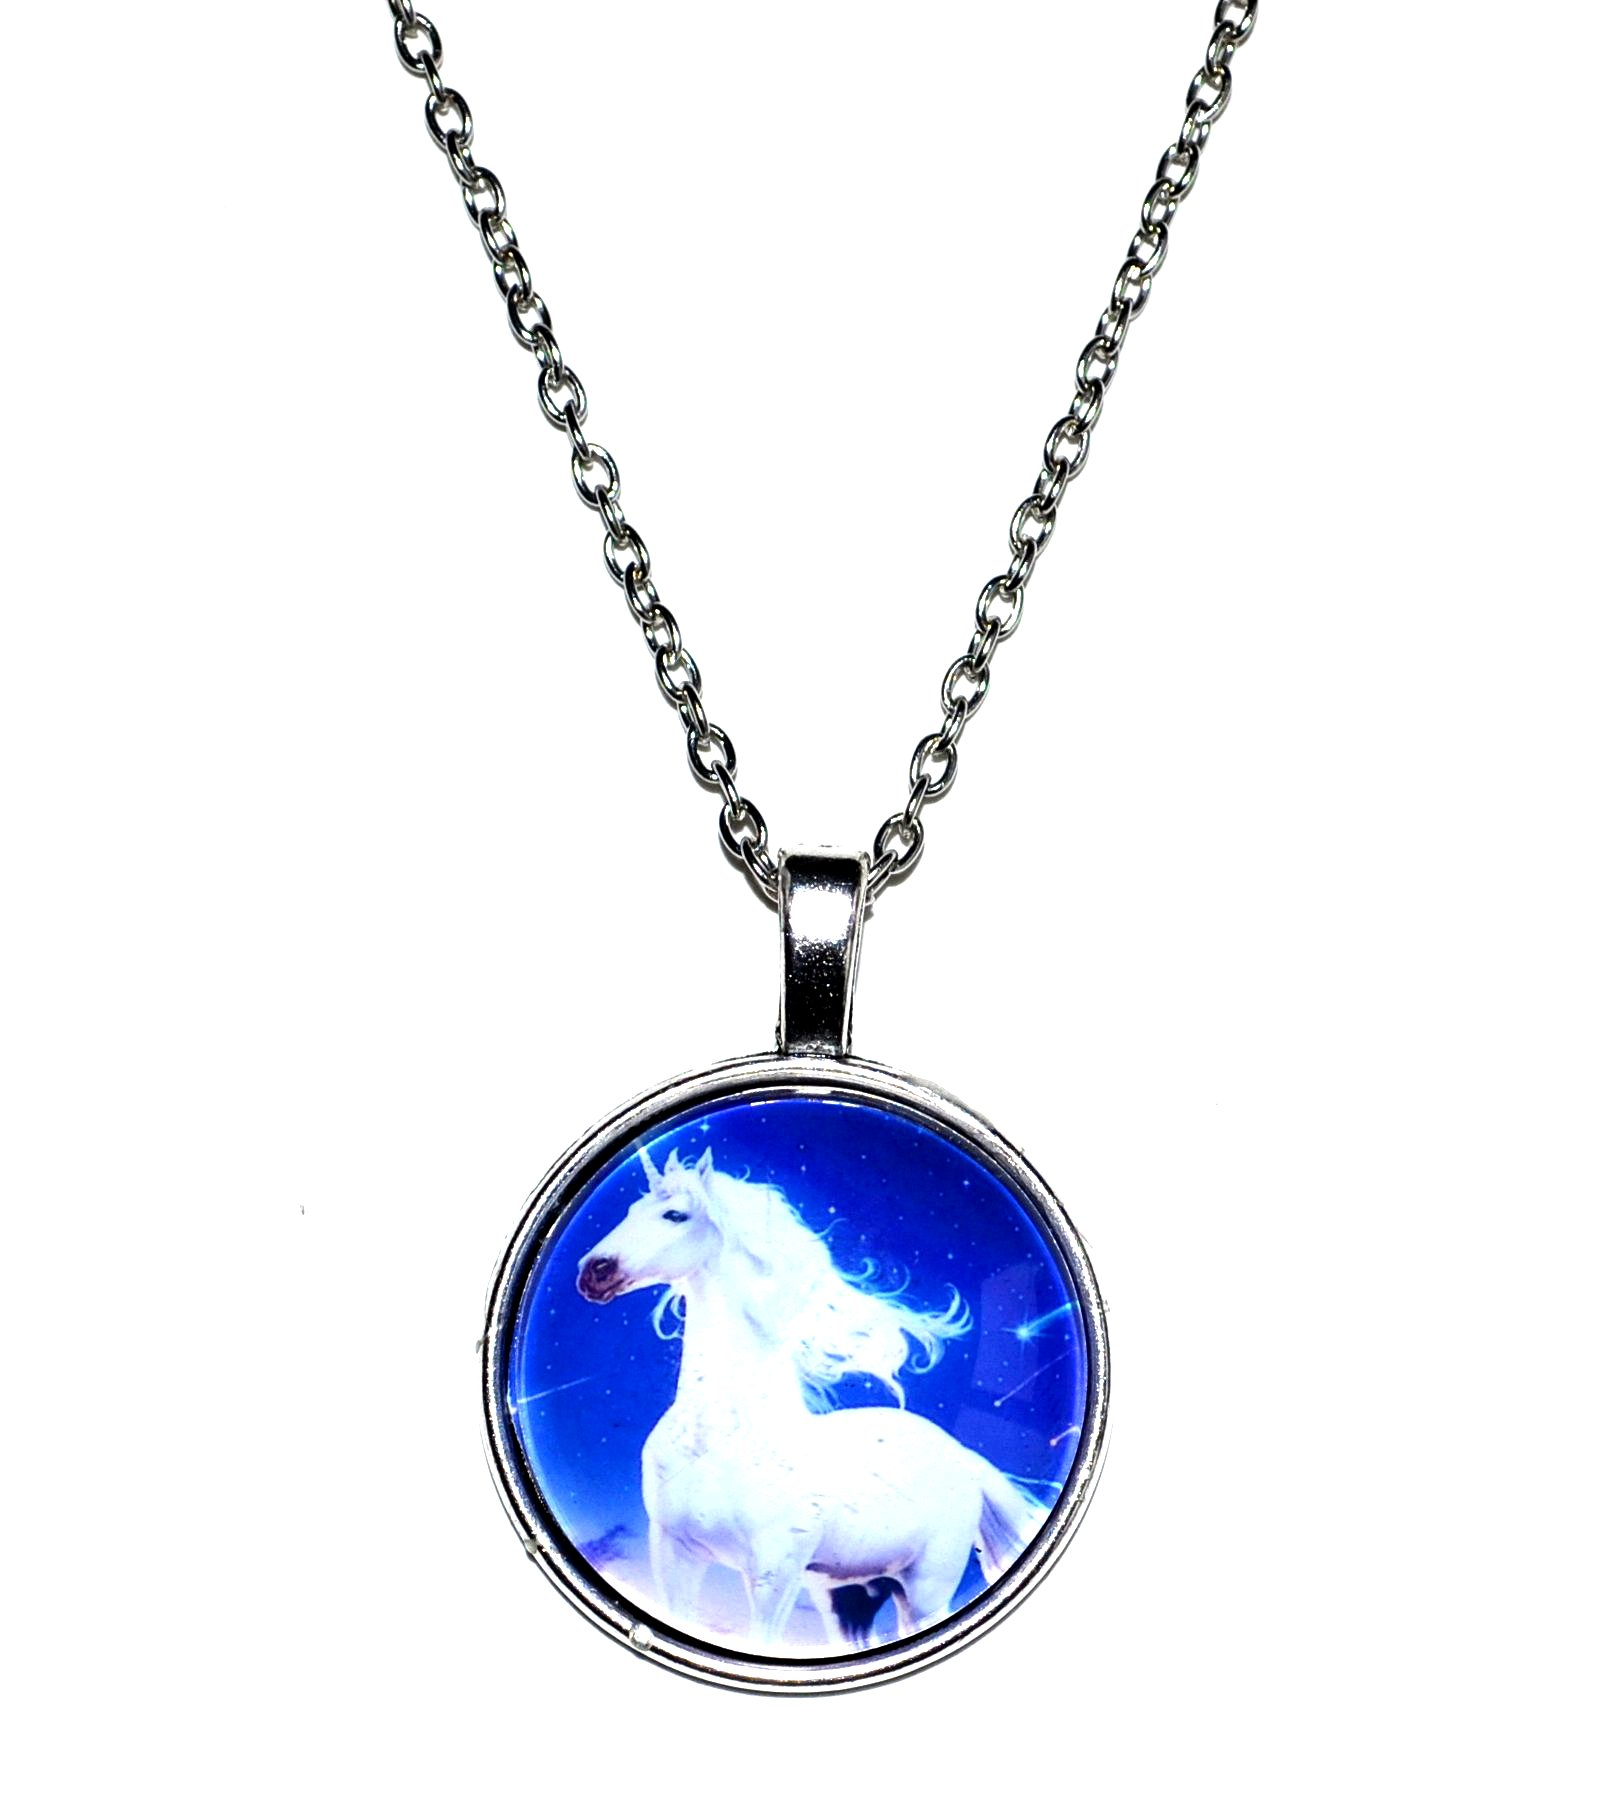 Unicorn Necklace Silver Plated Chain Mystic Wish